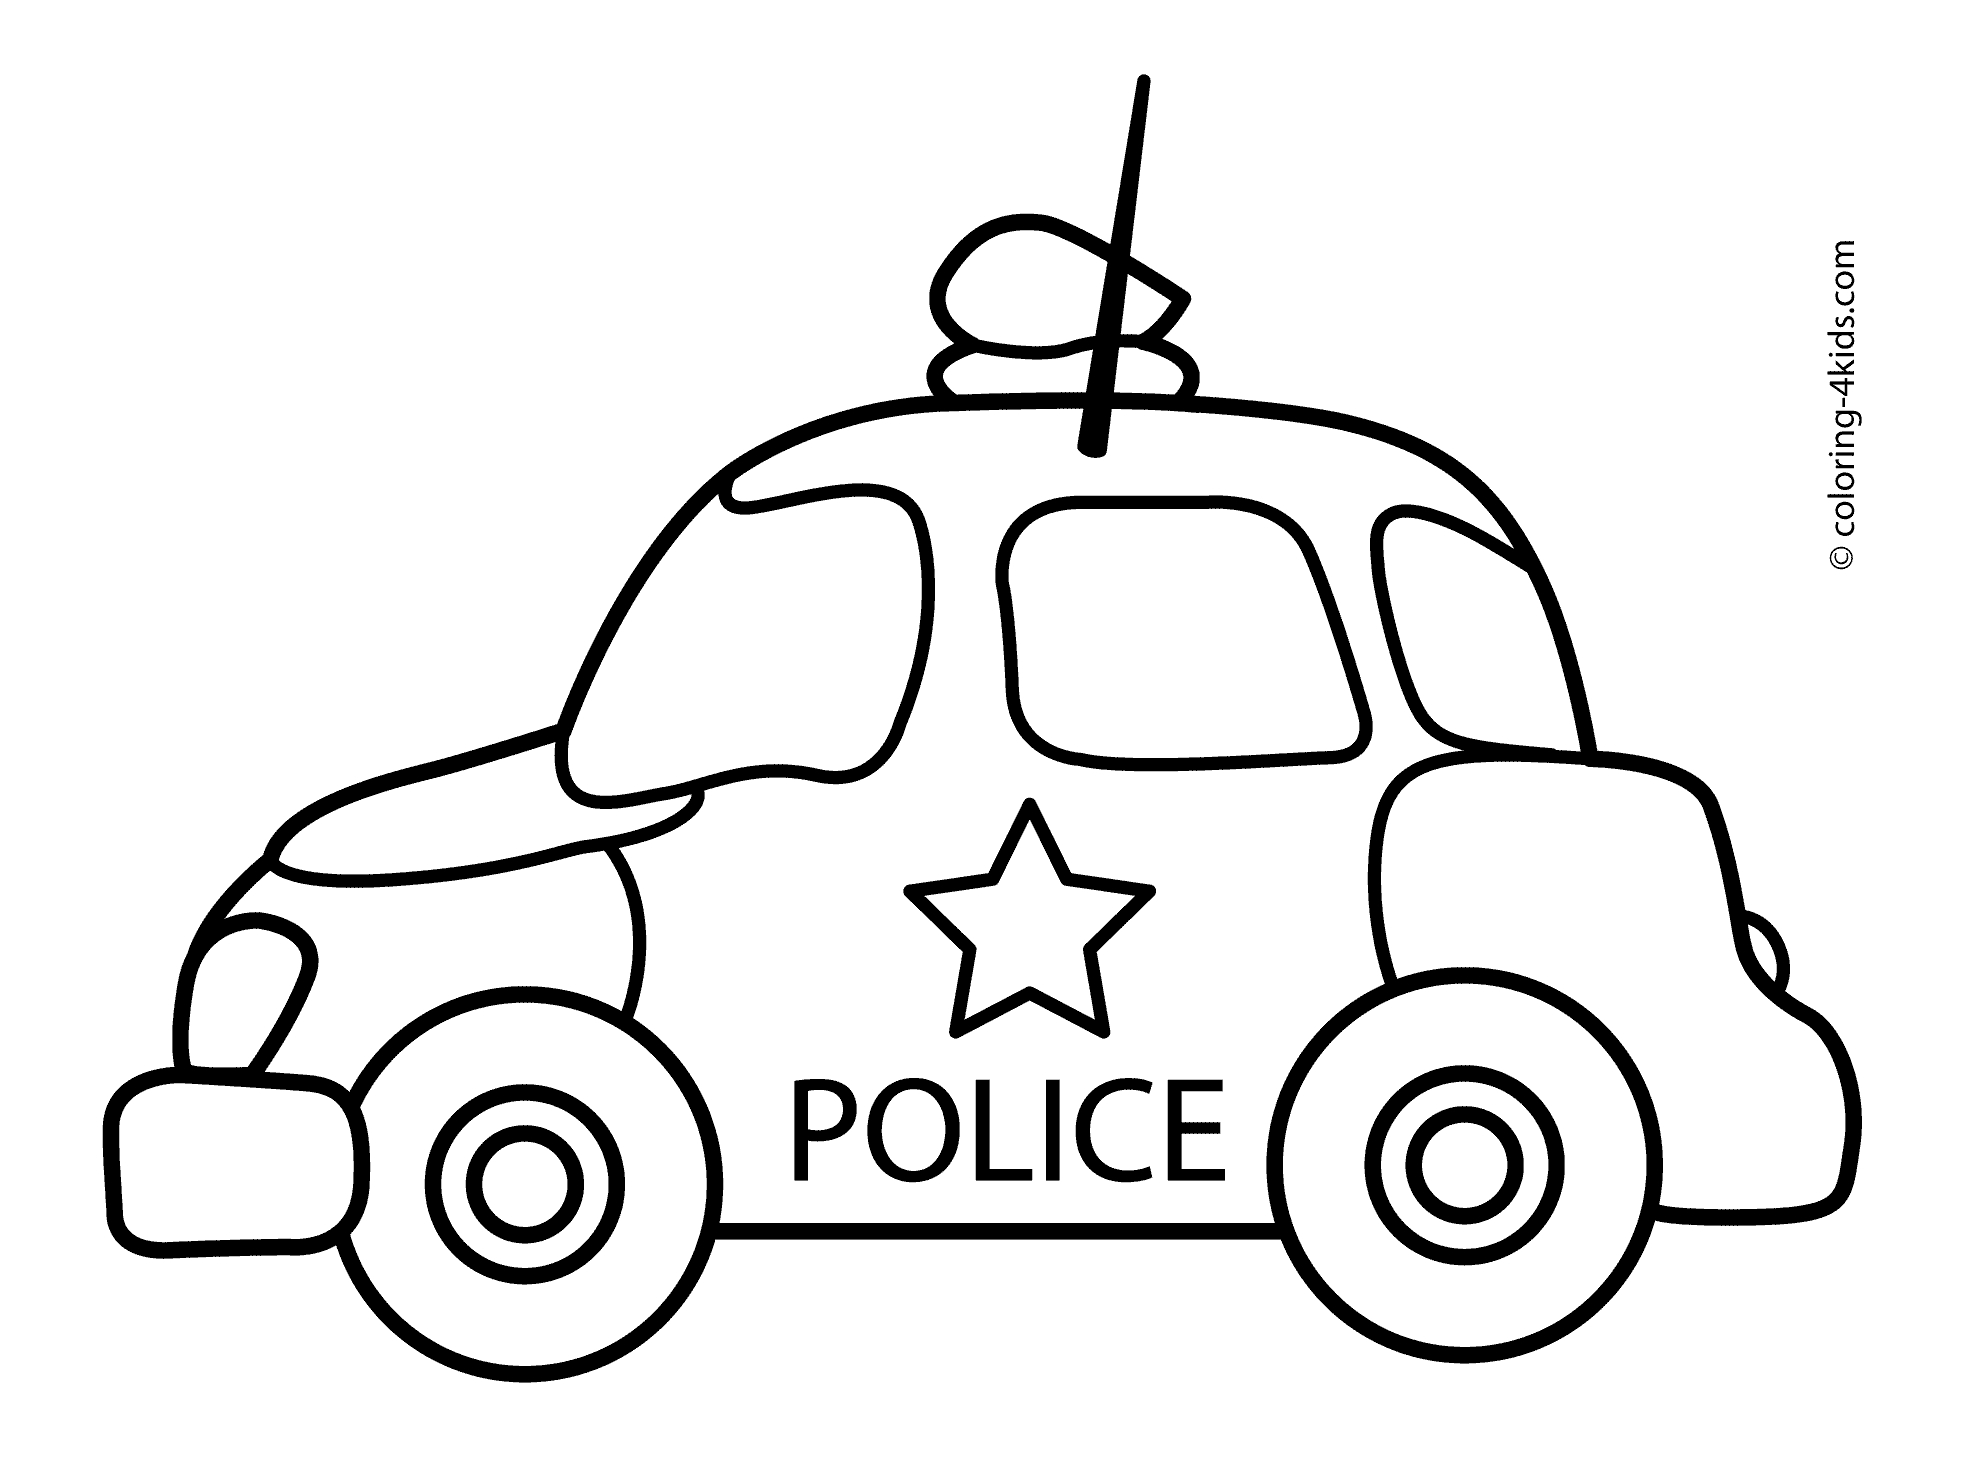 Transportation Coloring Pages For Preschool At Getdrawings